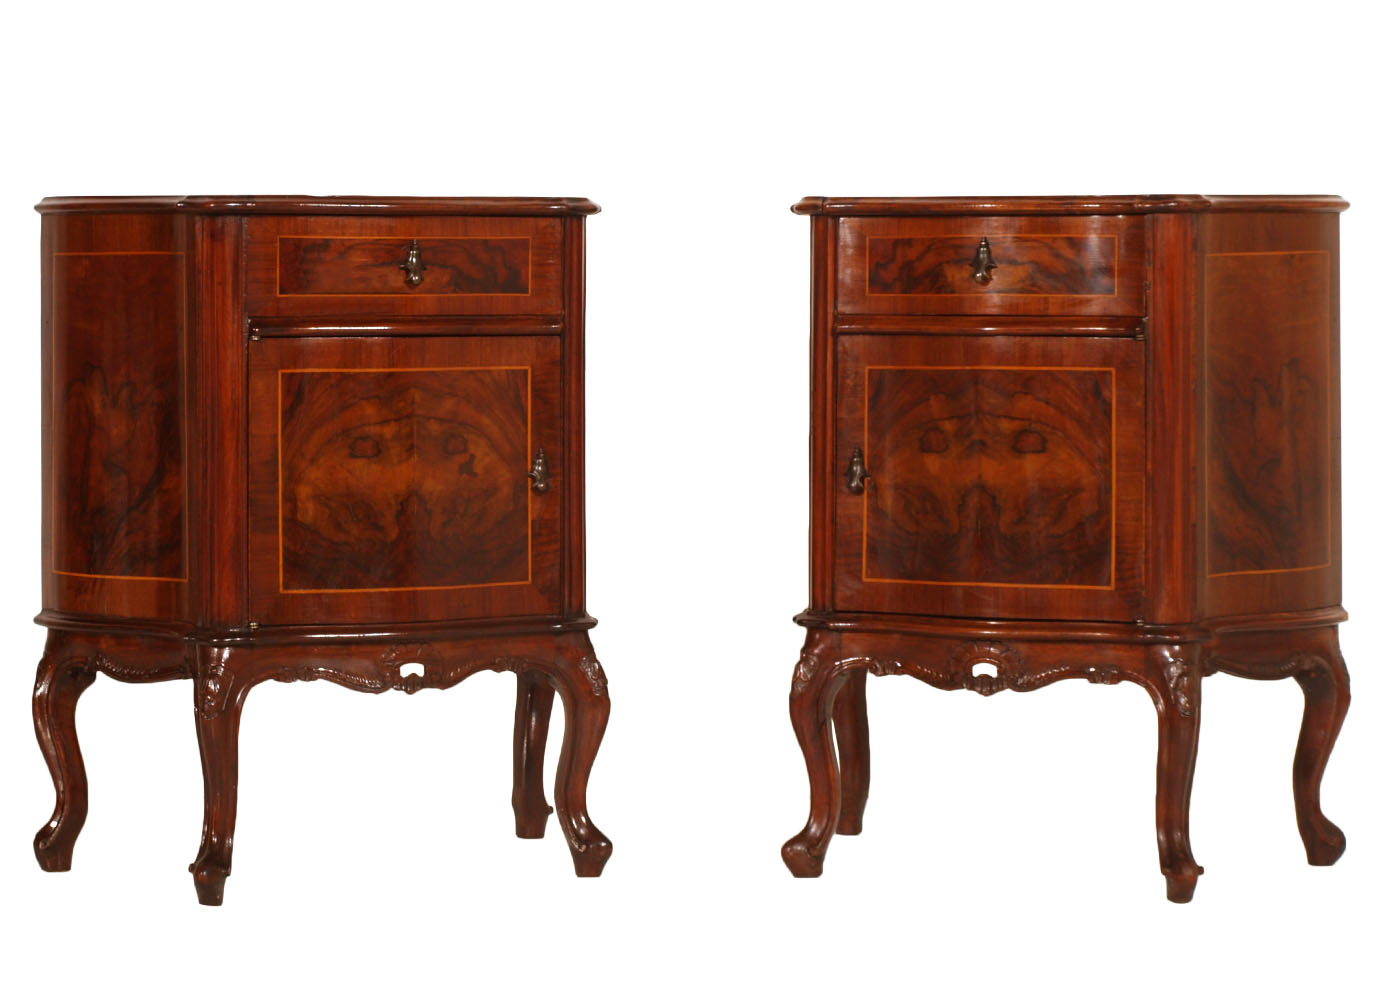 antique-chippendale-bedroom-furniture-set-MAH67-9